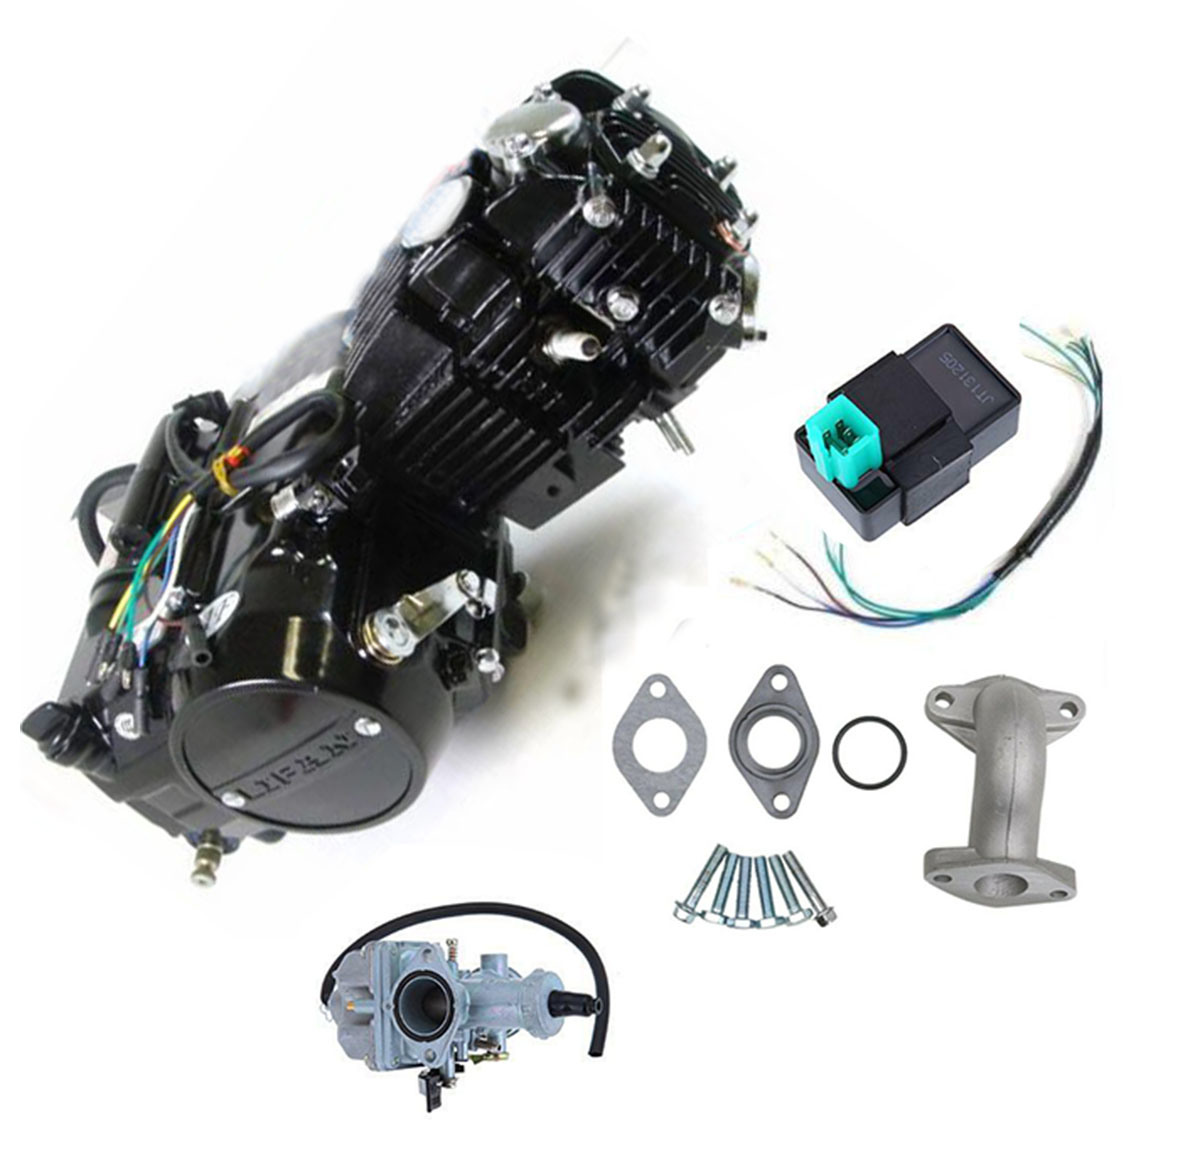 China Motorcycle Engine, Motorcycle Engine Manufacturers, Suppliers, Price  | Made-in-China com